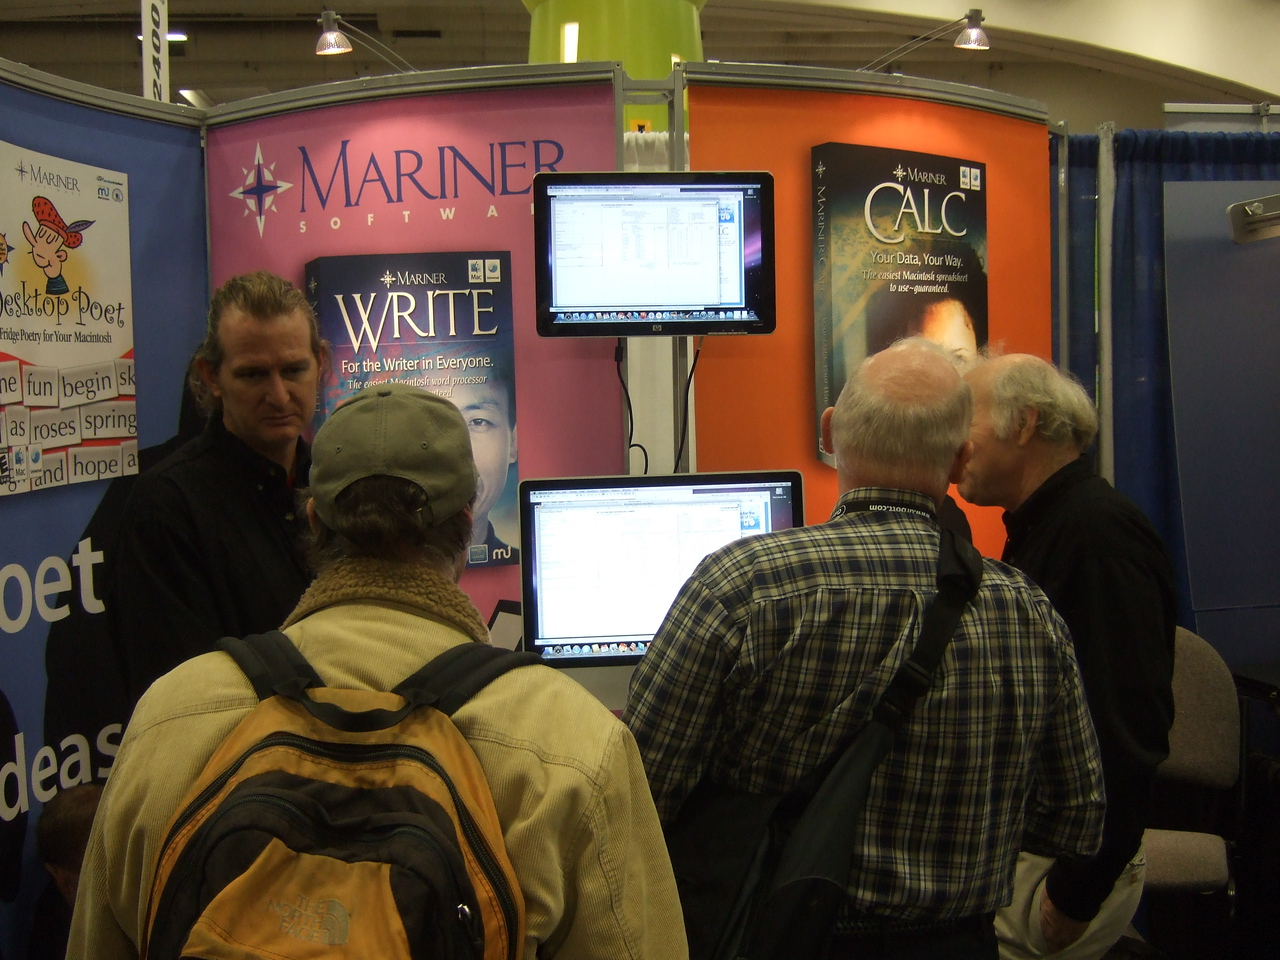 Marinersoft was at Macworld.